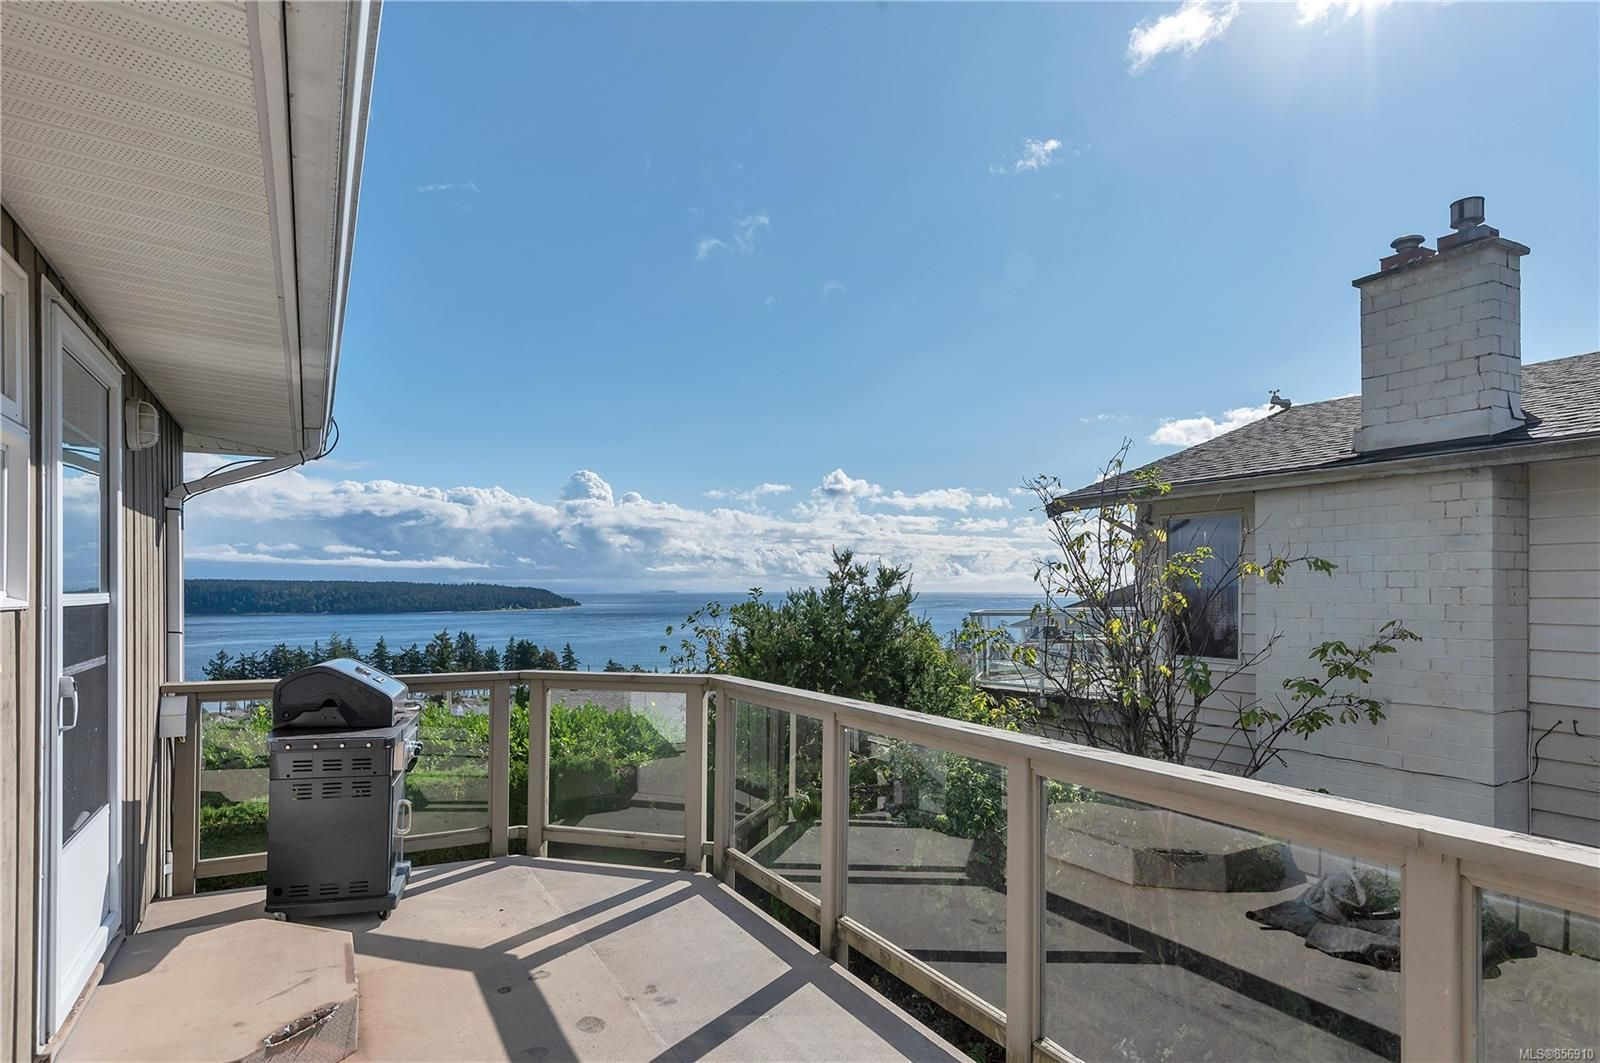 Photo 43: Photos: 215 S Alder St in : CR Campbell River Central House for sale (Campbell River)  : MLS®# 856910